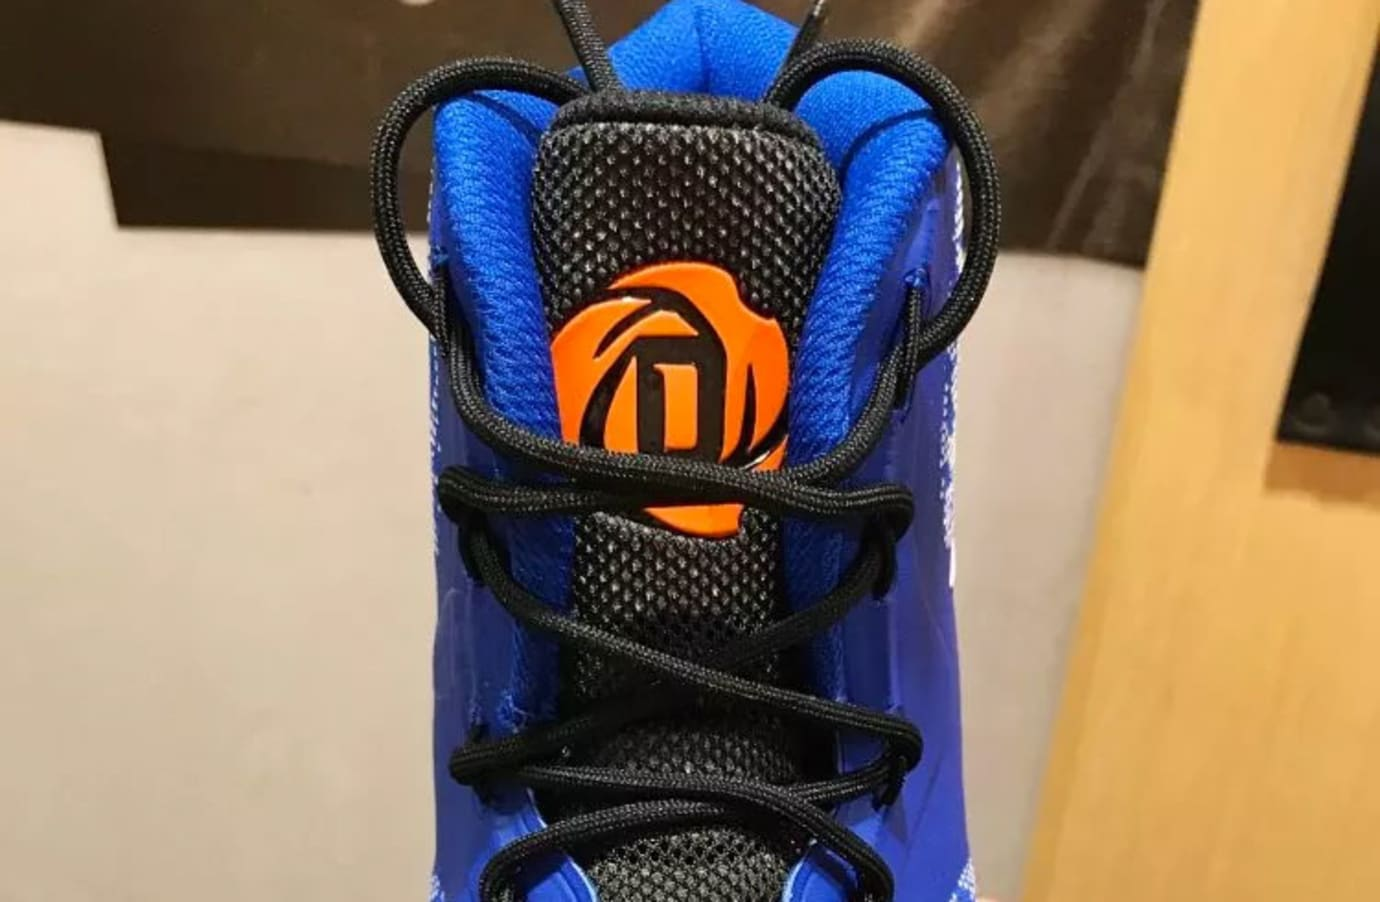 Adidas D Rose 8 New York Knicks Sneakers  5907a8172